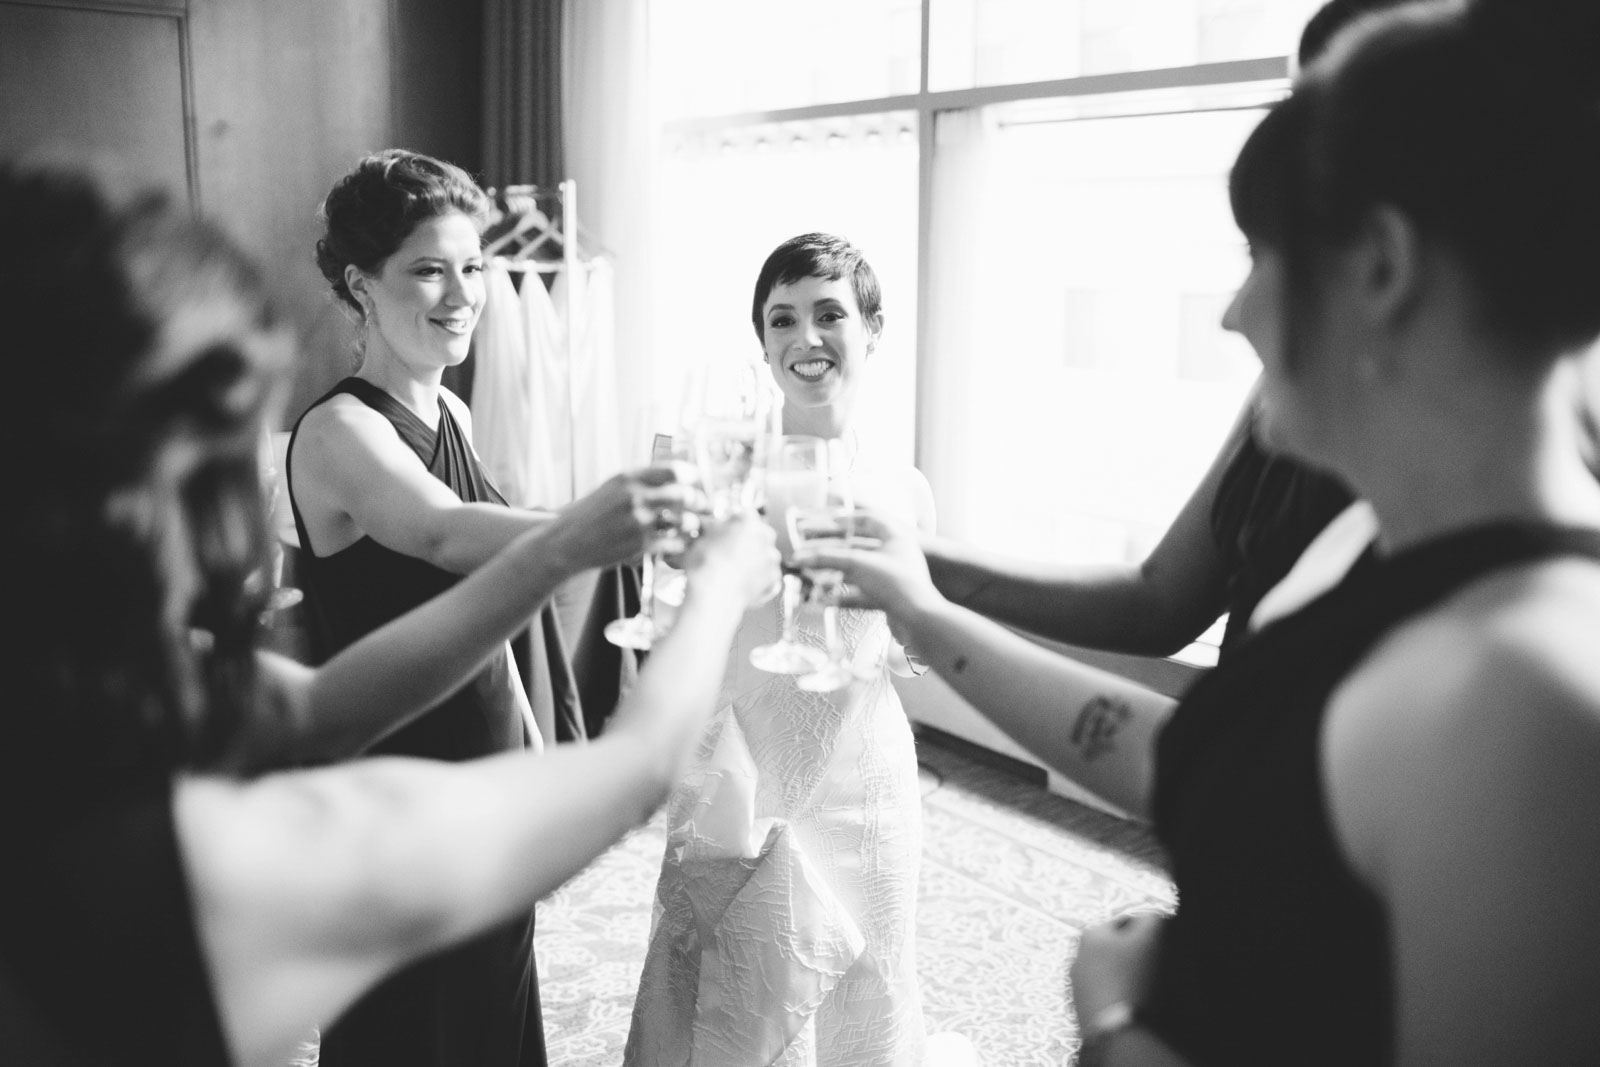 black and white shot of bride and bridesmaids sharing a champagne toast in bridal suite